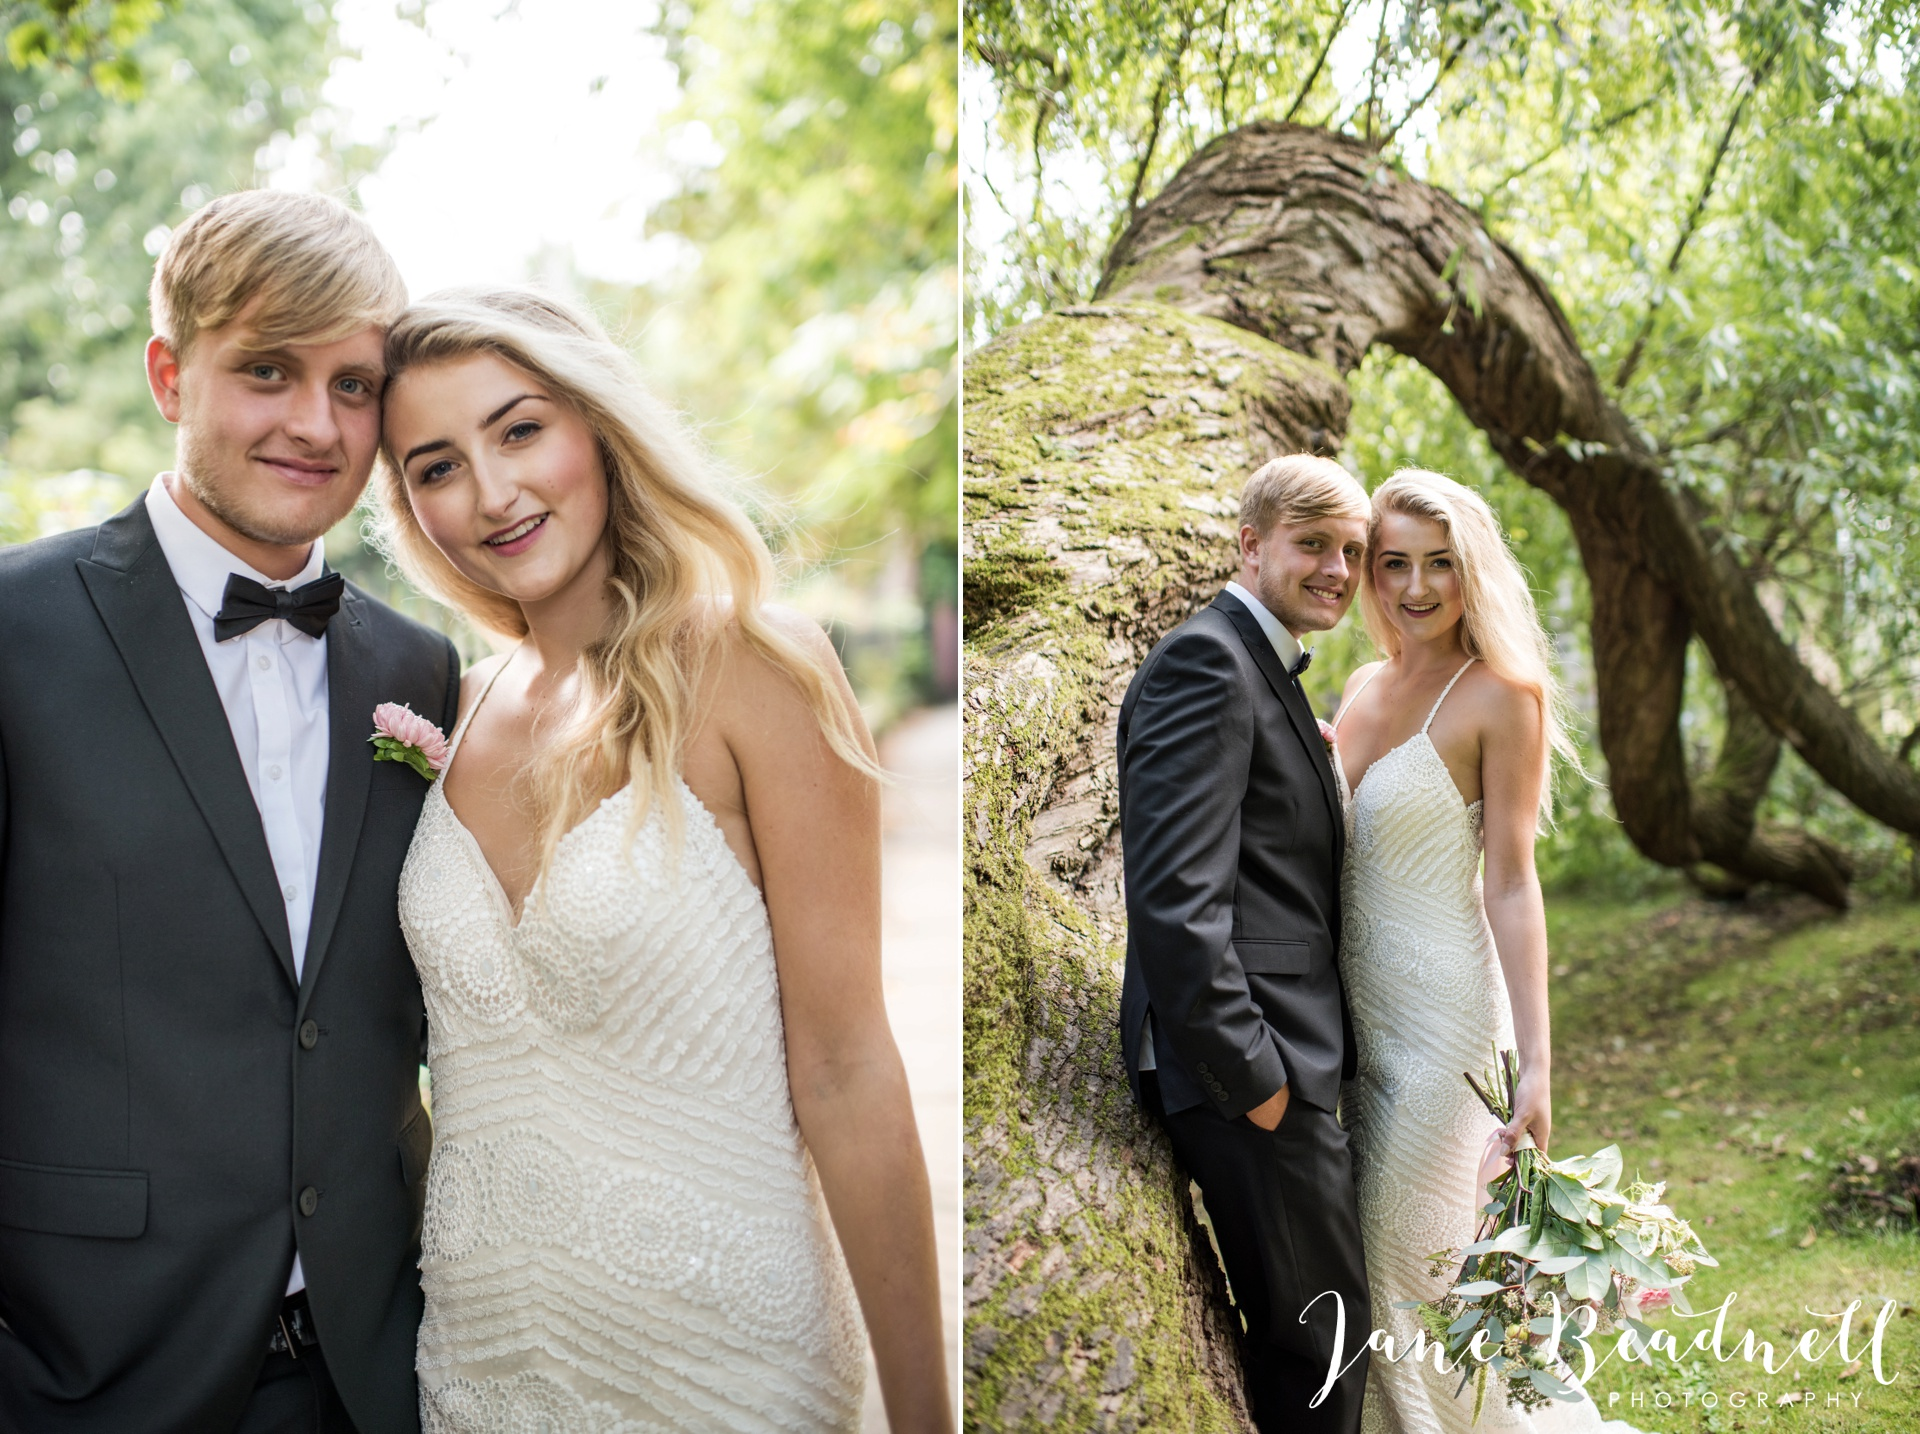 yorkshire-fine-art-wedding-photographer-jane-beadnell-photography-with-leafy-couture-wedding-flowers_0014